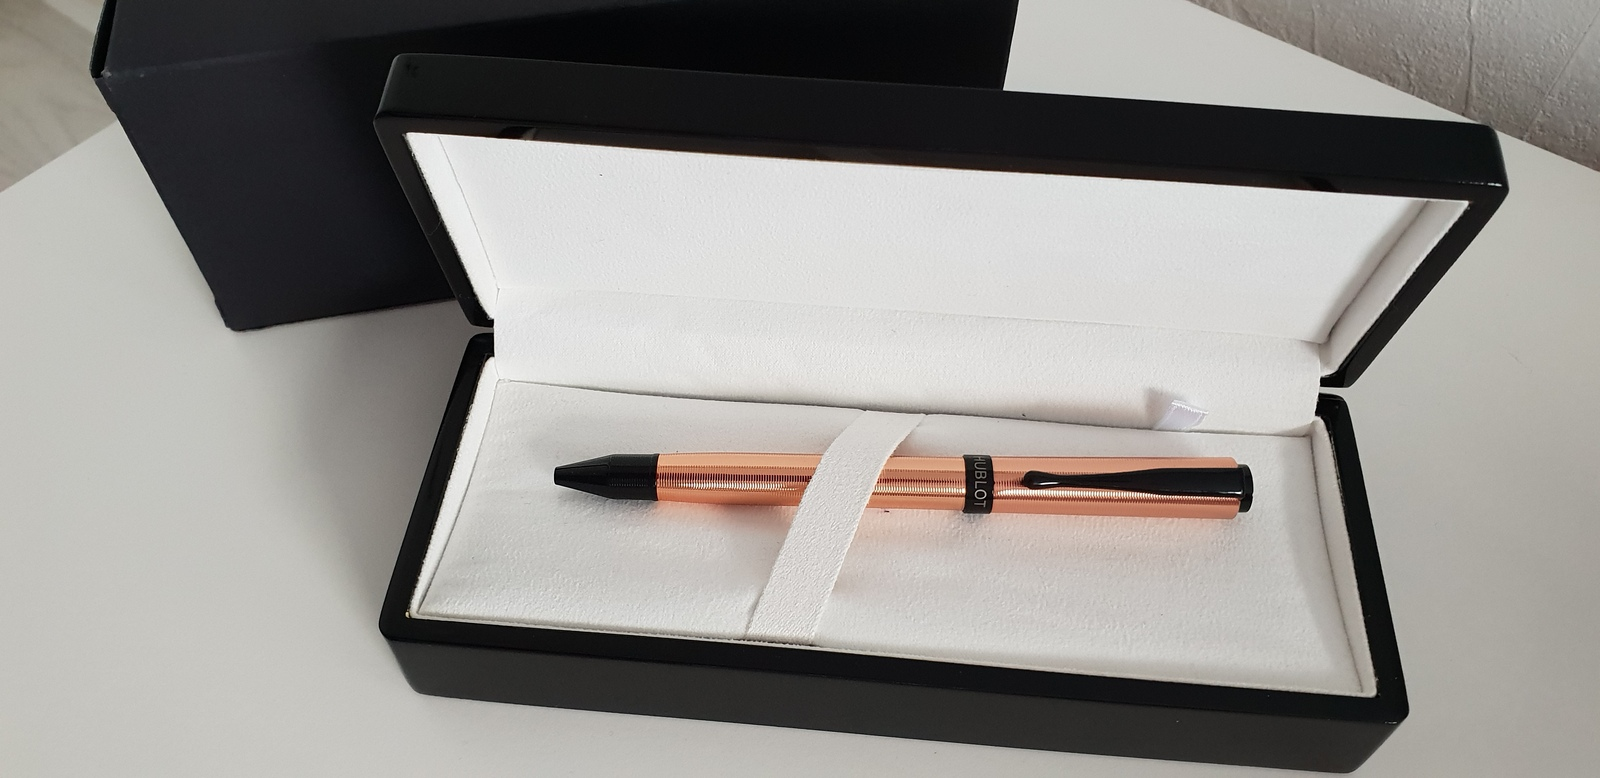 Hublot Pen in Box